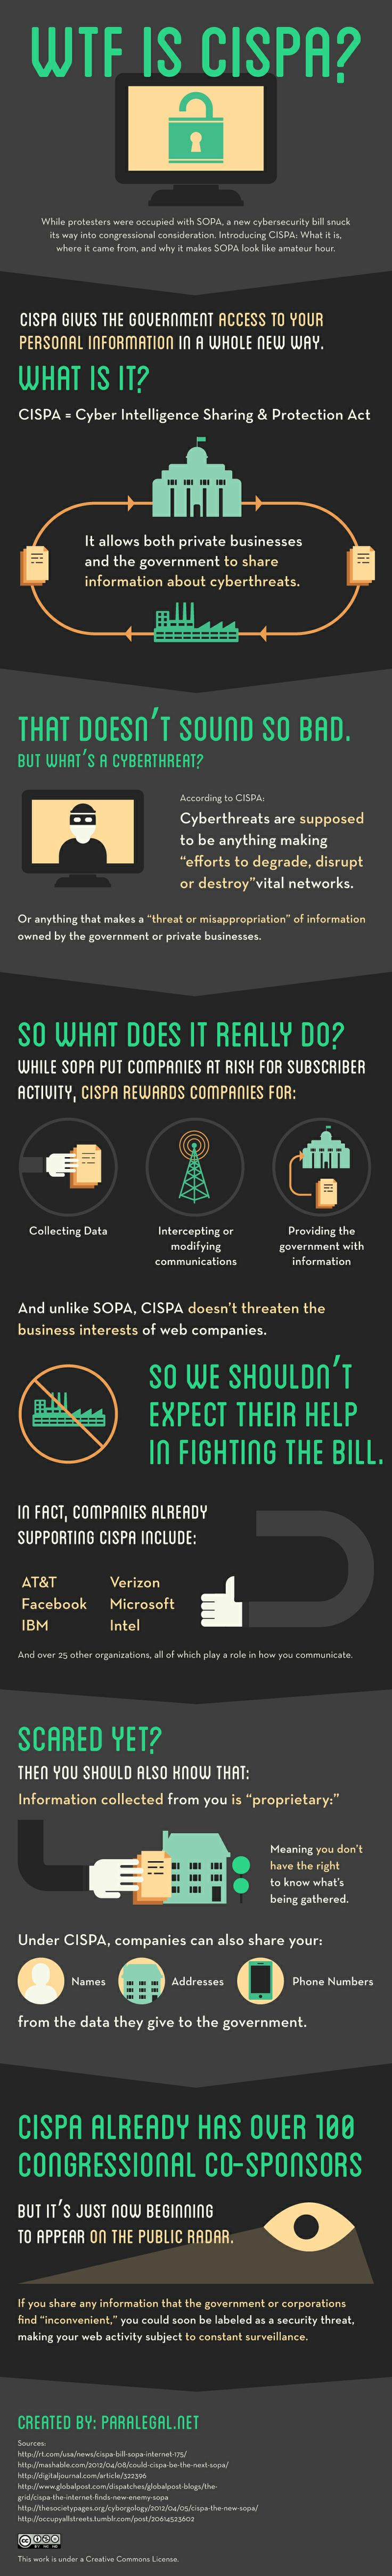 Why CISPA is so much more dangerous than SOPA, and why you're not hearing about it. THEY WON'T BE HAPPY UNTIL THEY CLAMP DOWN ON EVERY ASPECT OF FREE SOCIETY. YOU CAN THANK THE ILLUMINATI BANKSTERS! WELCOME TO THE NWO! NOW STOP DRINKING THE FLUORIDE AND GET OFF YOU'RE ASSES!